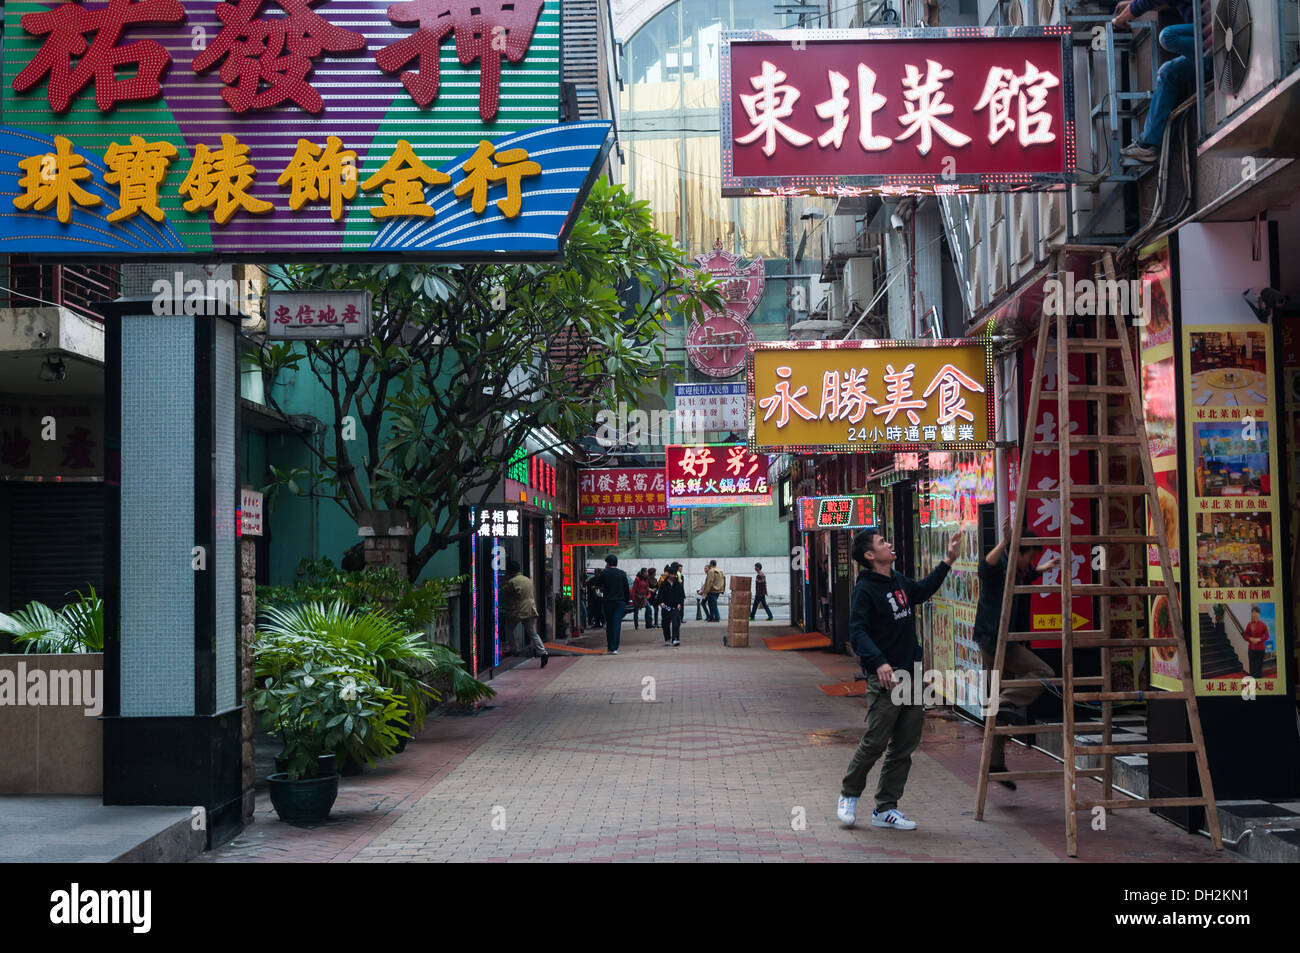 Men hanging advertisements in Macau, China. - Stock Image